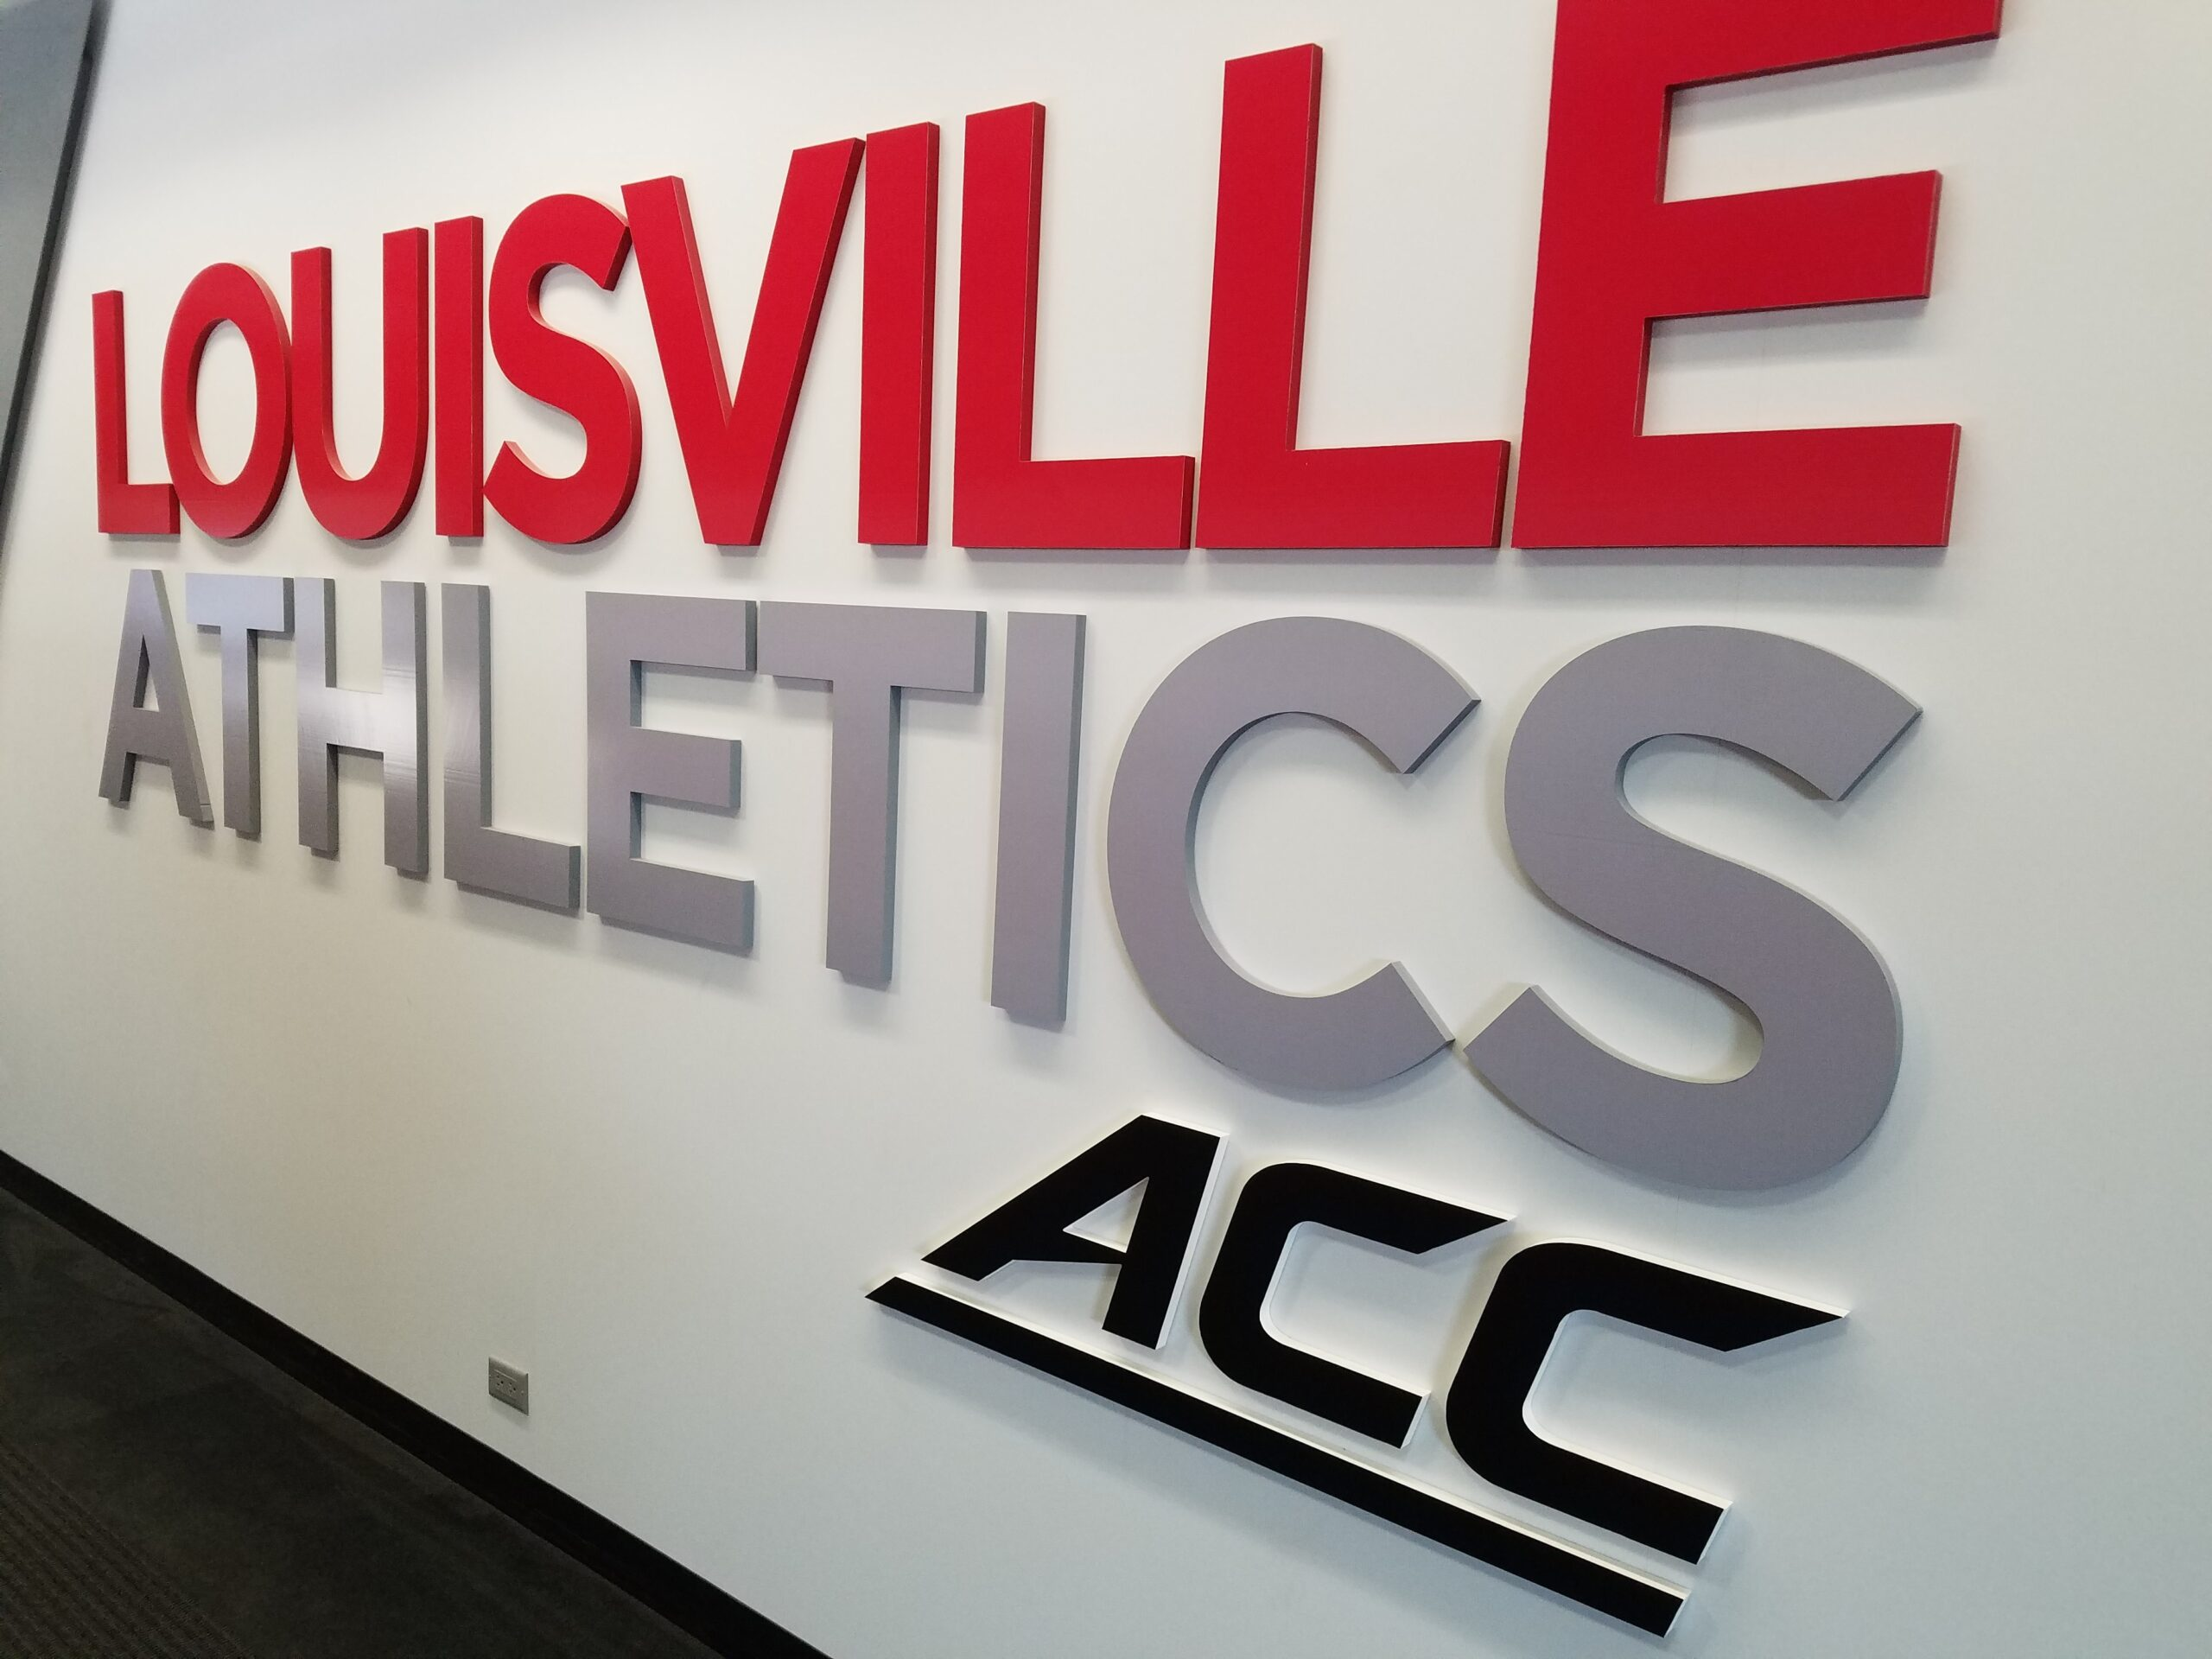 U of L athletics, athletics, sports, acc